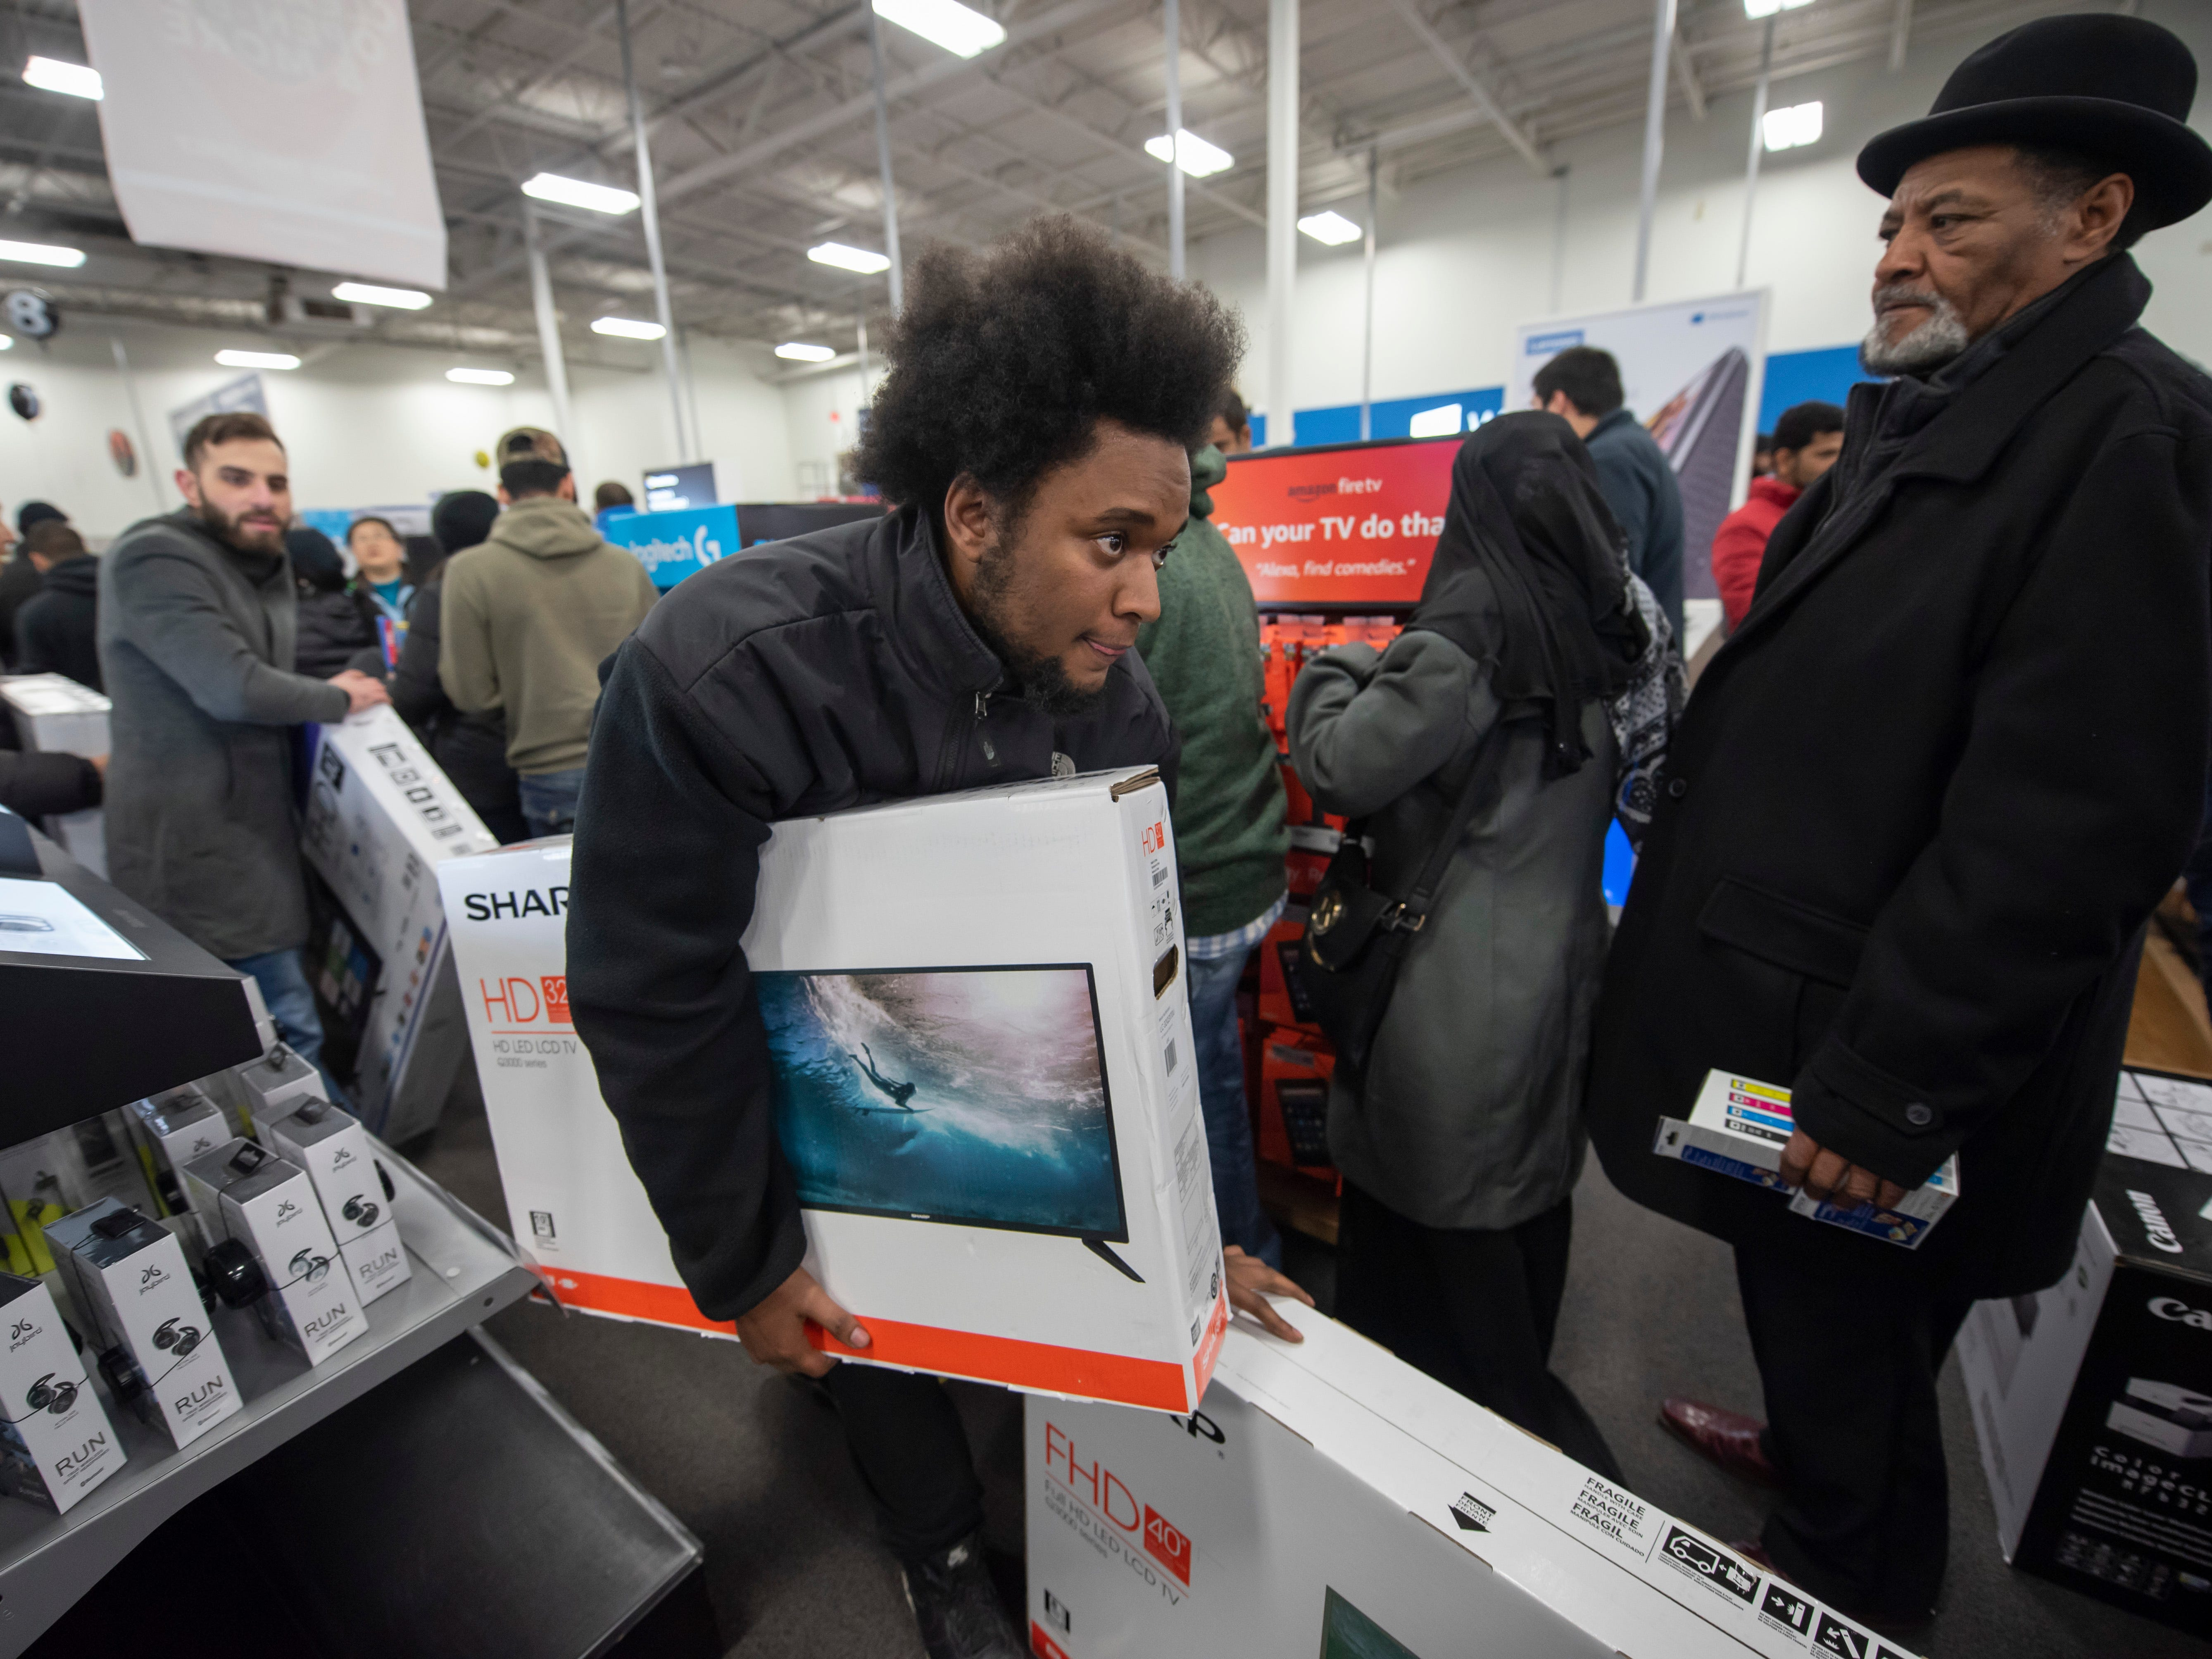 Justin Burton of Detroit carries two televisions sets while shopping during a Thanksgiving evening sale at Best Buy in Dearborn.